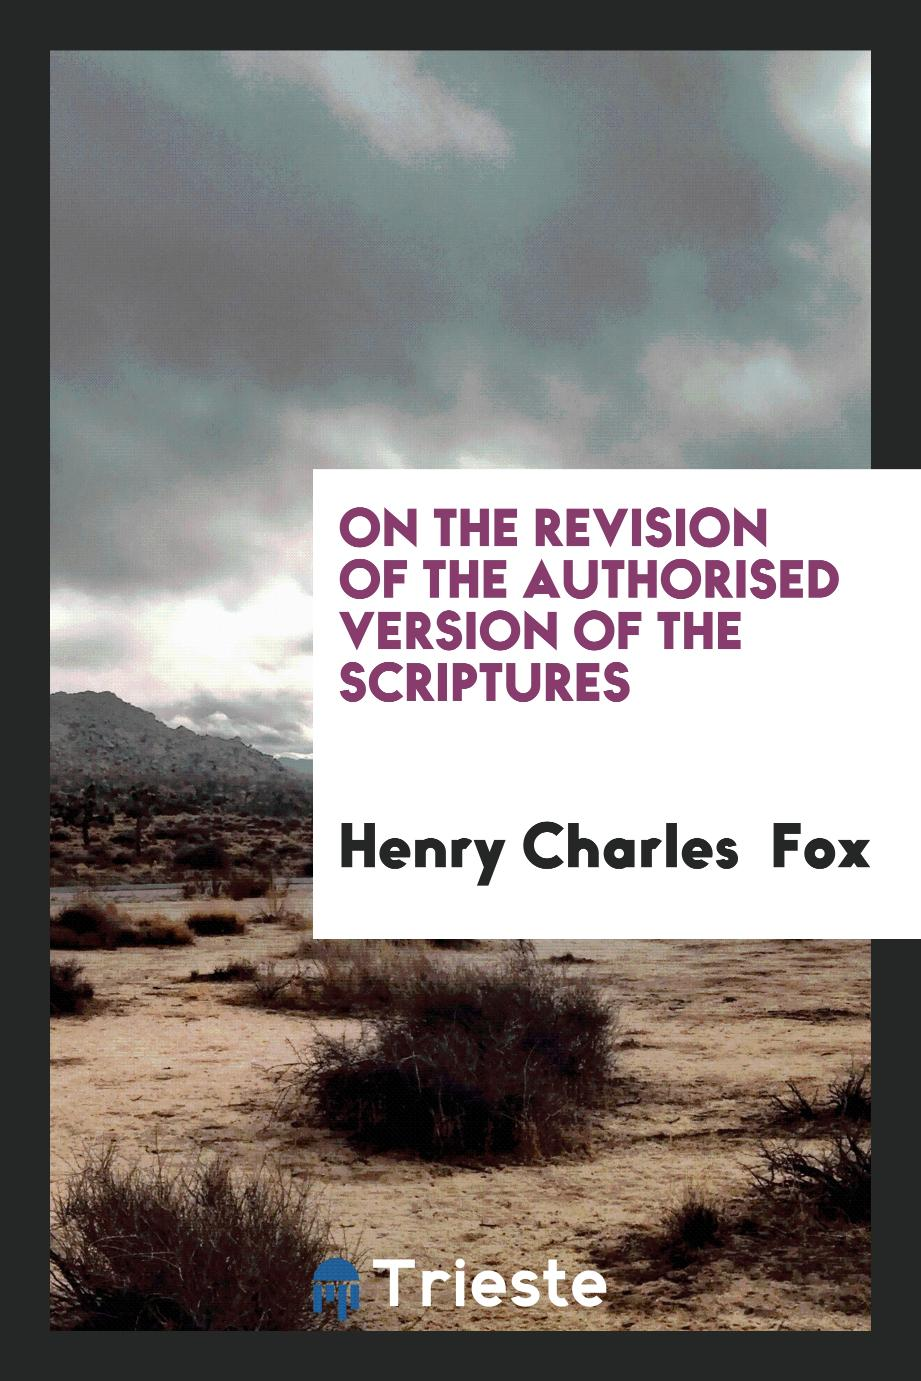 On the revision of the authorised version of the Scriptures